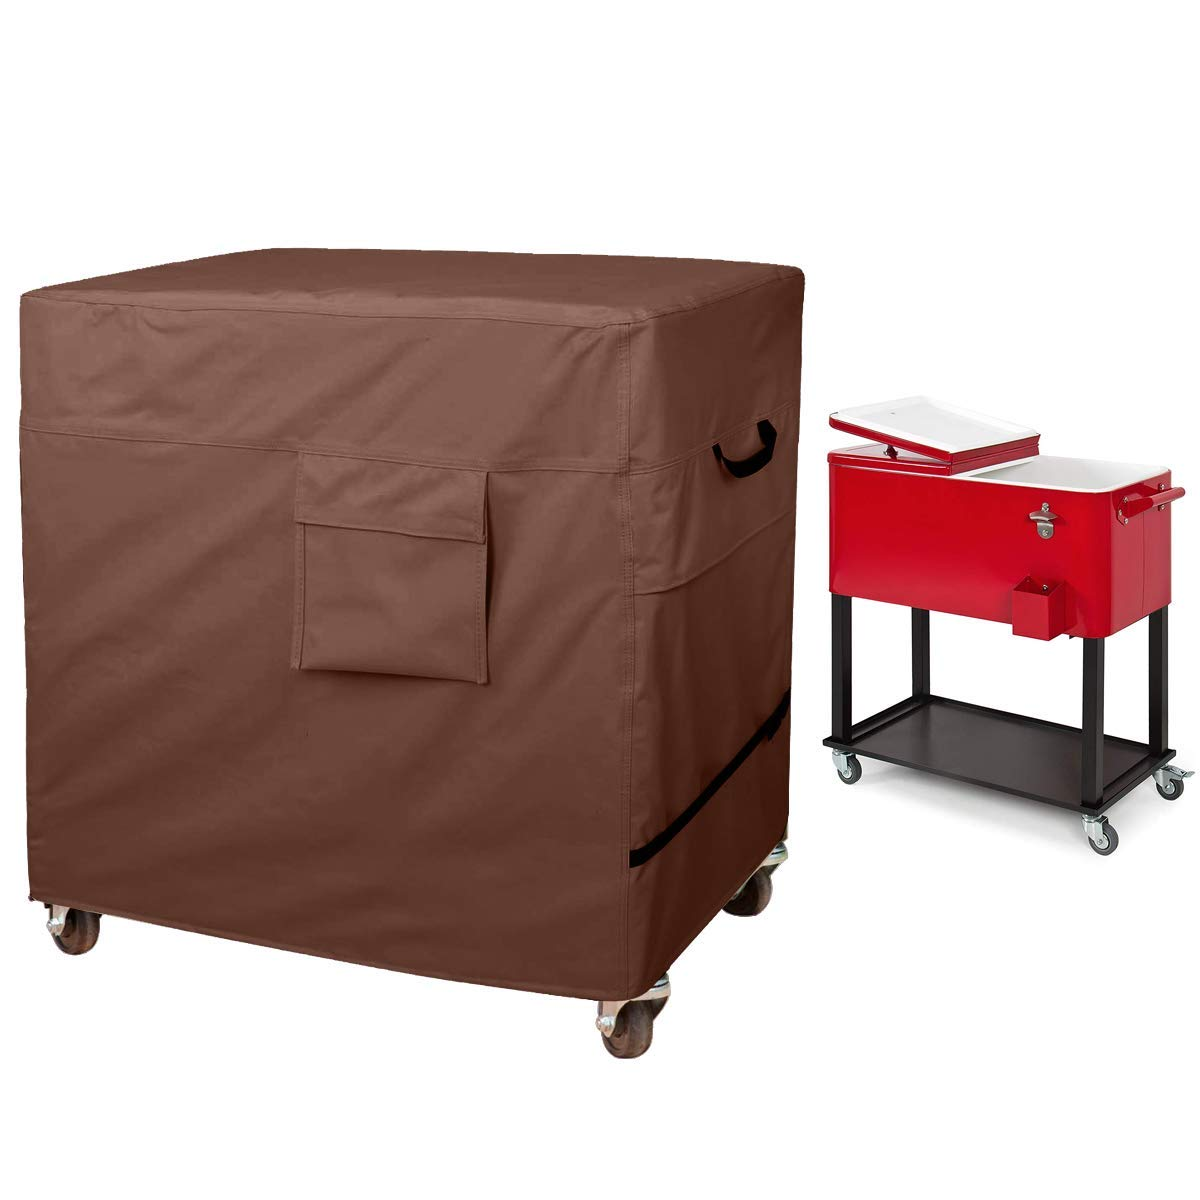 TUYUU Cooler Cart Cover, Universal Fit for Most 80-100 QT,Waterproof Thickened Protective Cover for Patio Cooler,Beverage Cart, Rolling Ice Chest (34'' L x 20'' W x 32'' H, Brown) by TUYUU